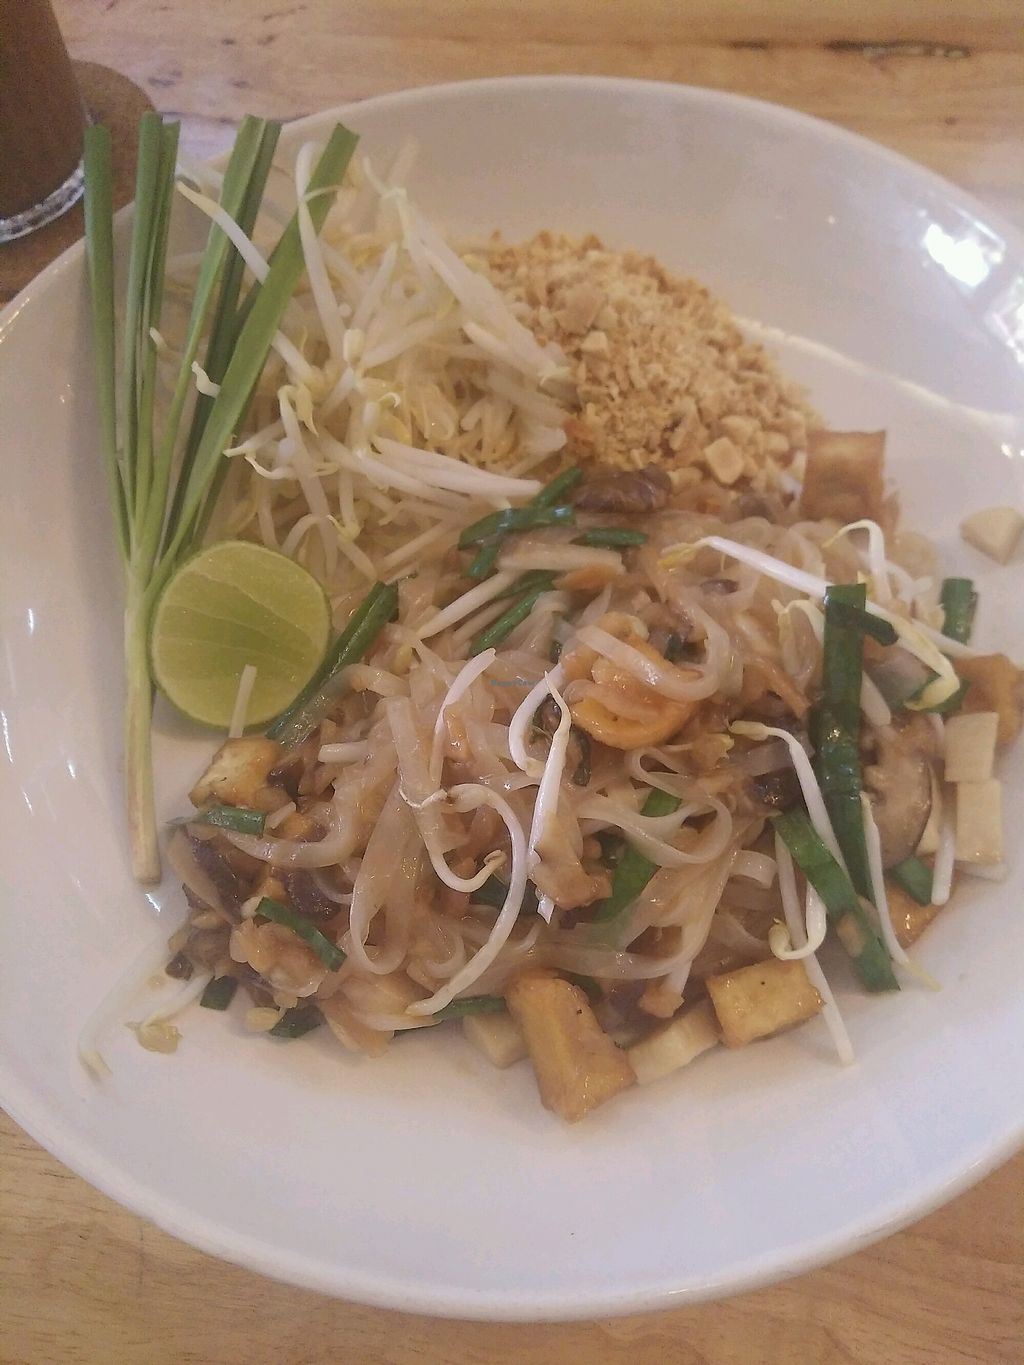 "Photo of Hua Hin Vegan Cafe and Wine  by <a href=""/members/profile/GogoVego"">GogoVego</a> <br/>Patthai <br/> March 5, 2018  - <a href='/contact/abuse/image/95513/366956'>Report</a>"